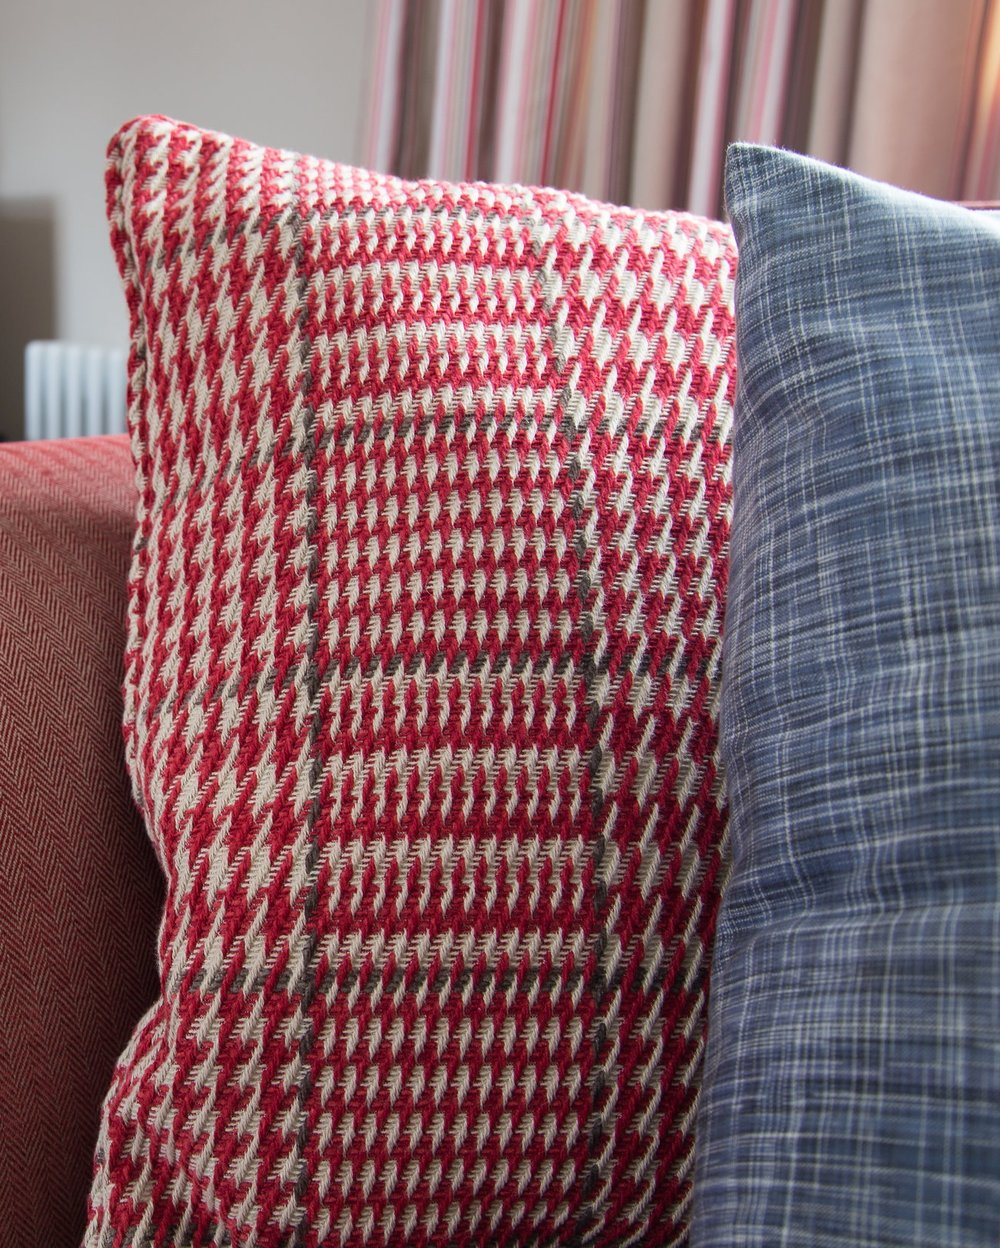 Reupholstered Cushions in Red in a Grade II Listed Home in Battle East Sussex – Interior Design by Smartstyle Interiors